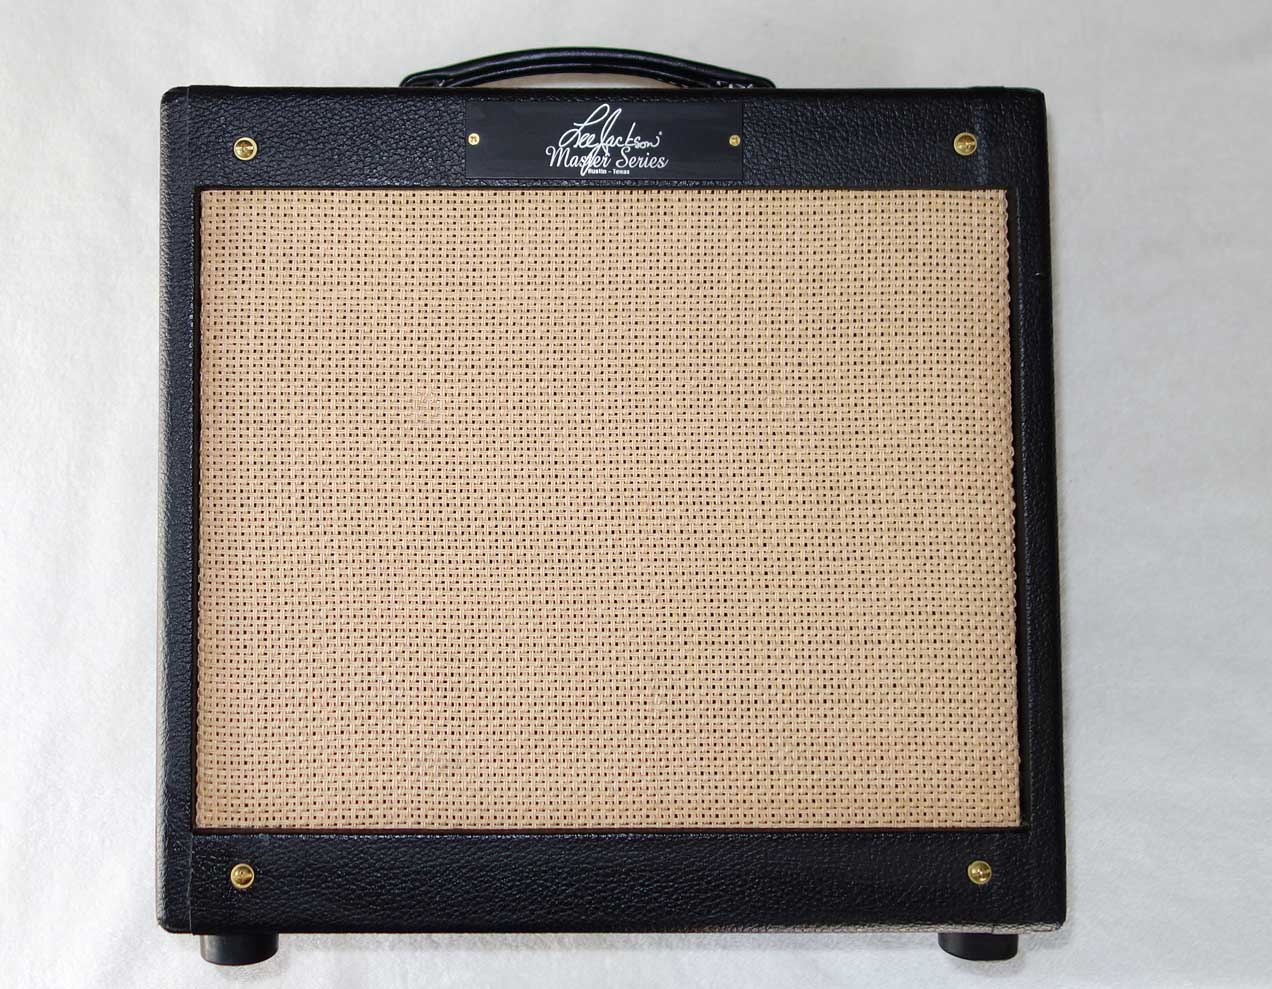 """New Lee Jackson MASTER SERIES Model 1884 1x12"""" Guitar Extension Cabinet"""